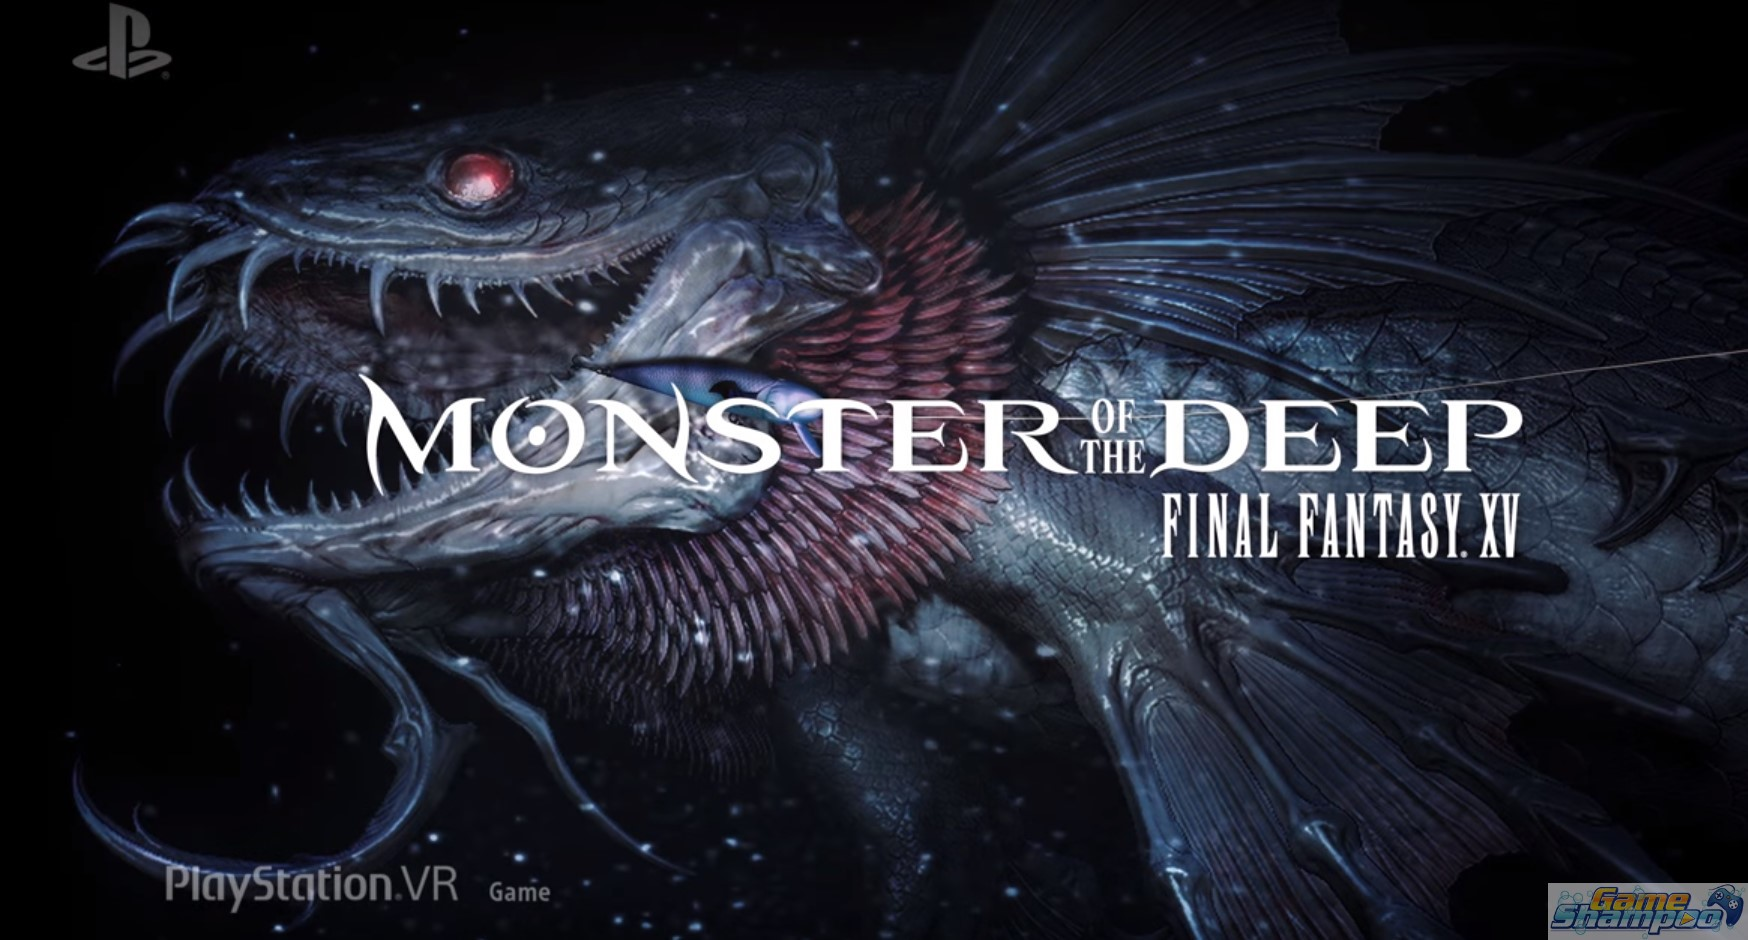 Sony E3 2017 Final Fantasy XV Monsters of the Deep VR